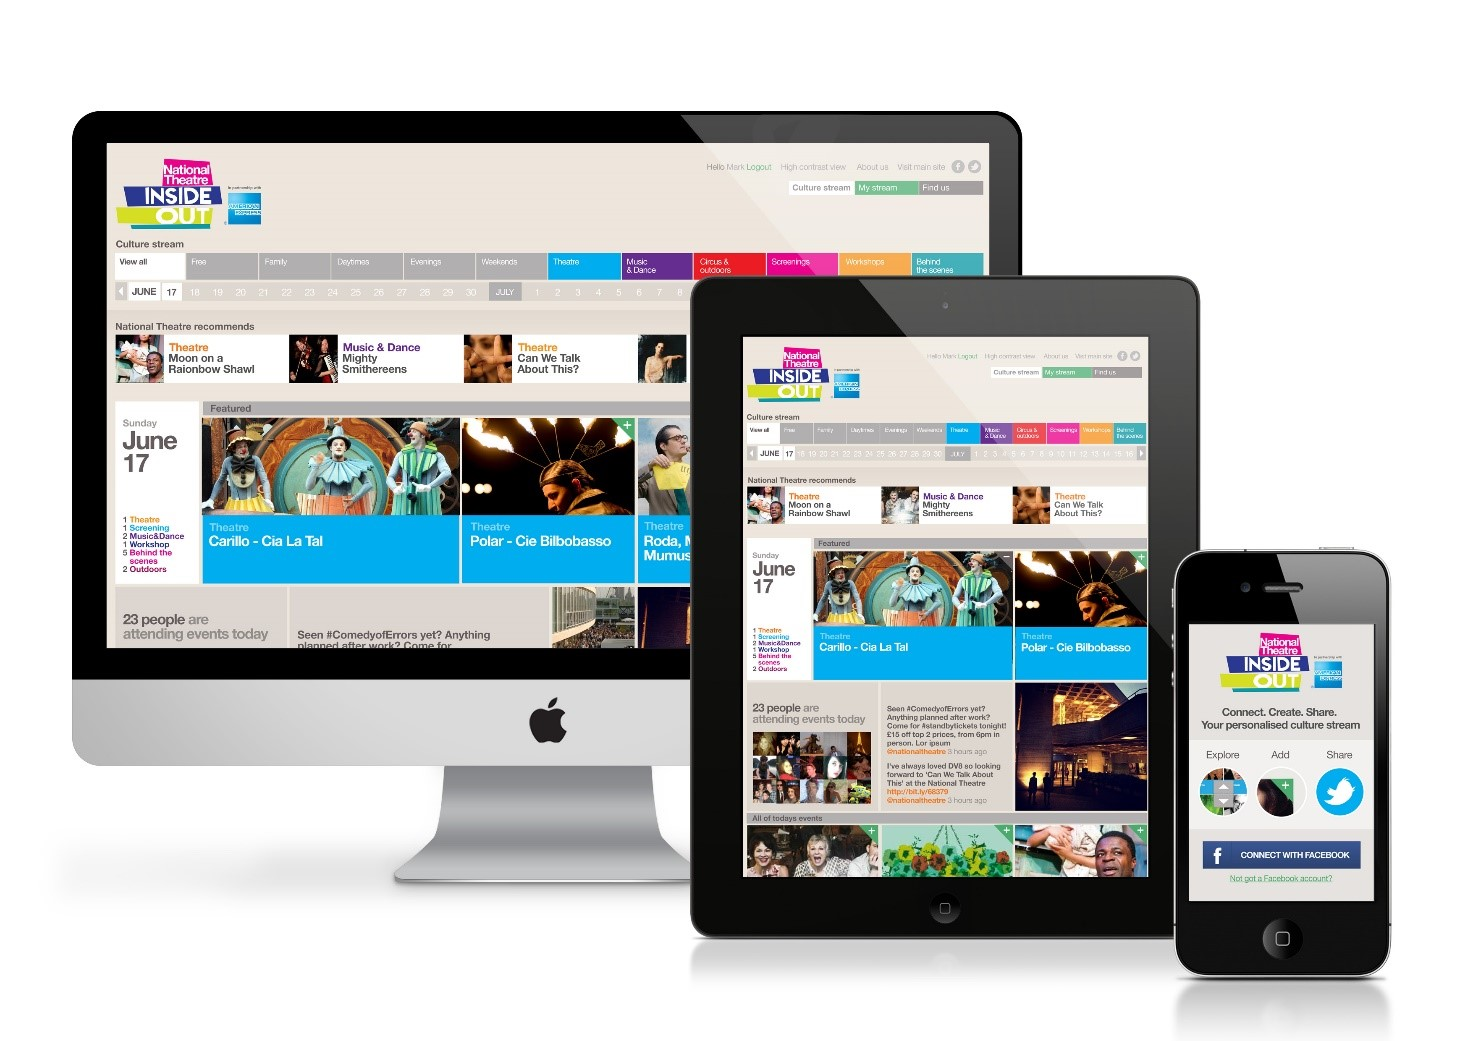 responsive-desktop-tablet-mobile